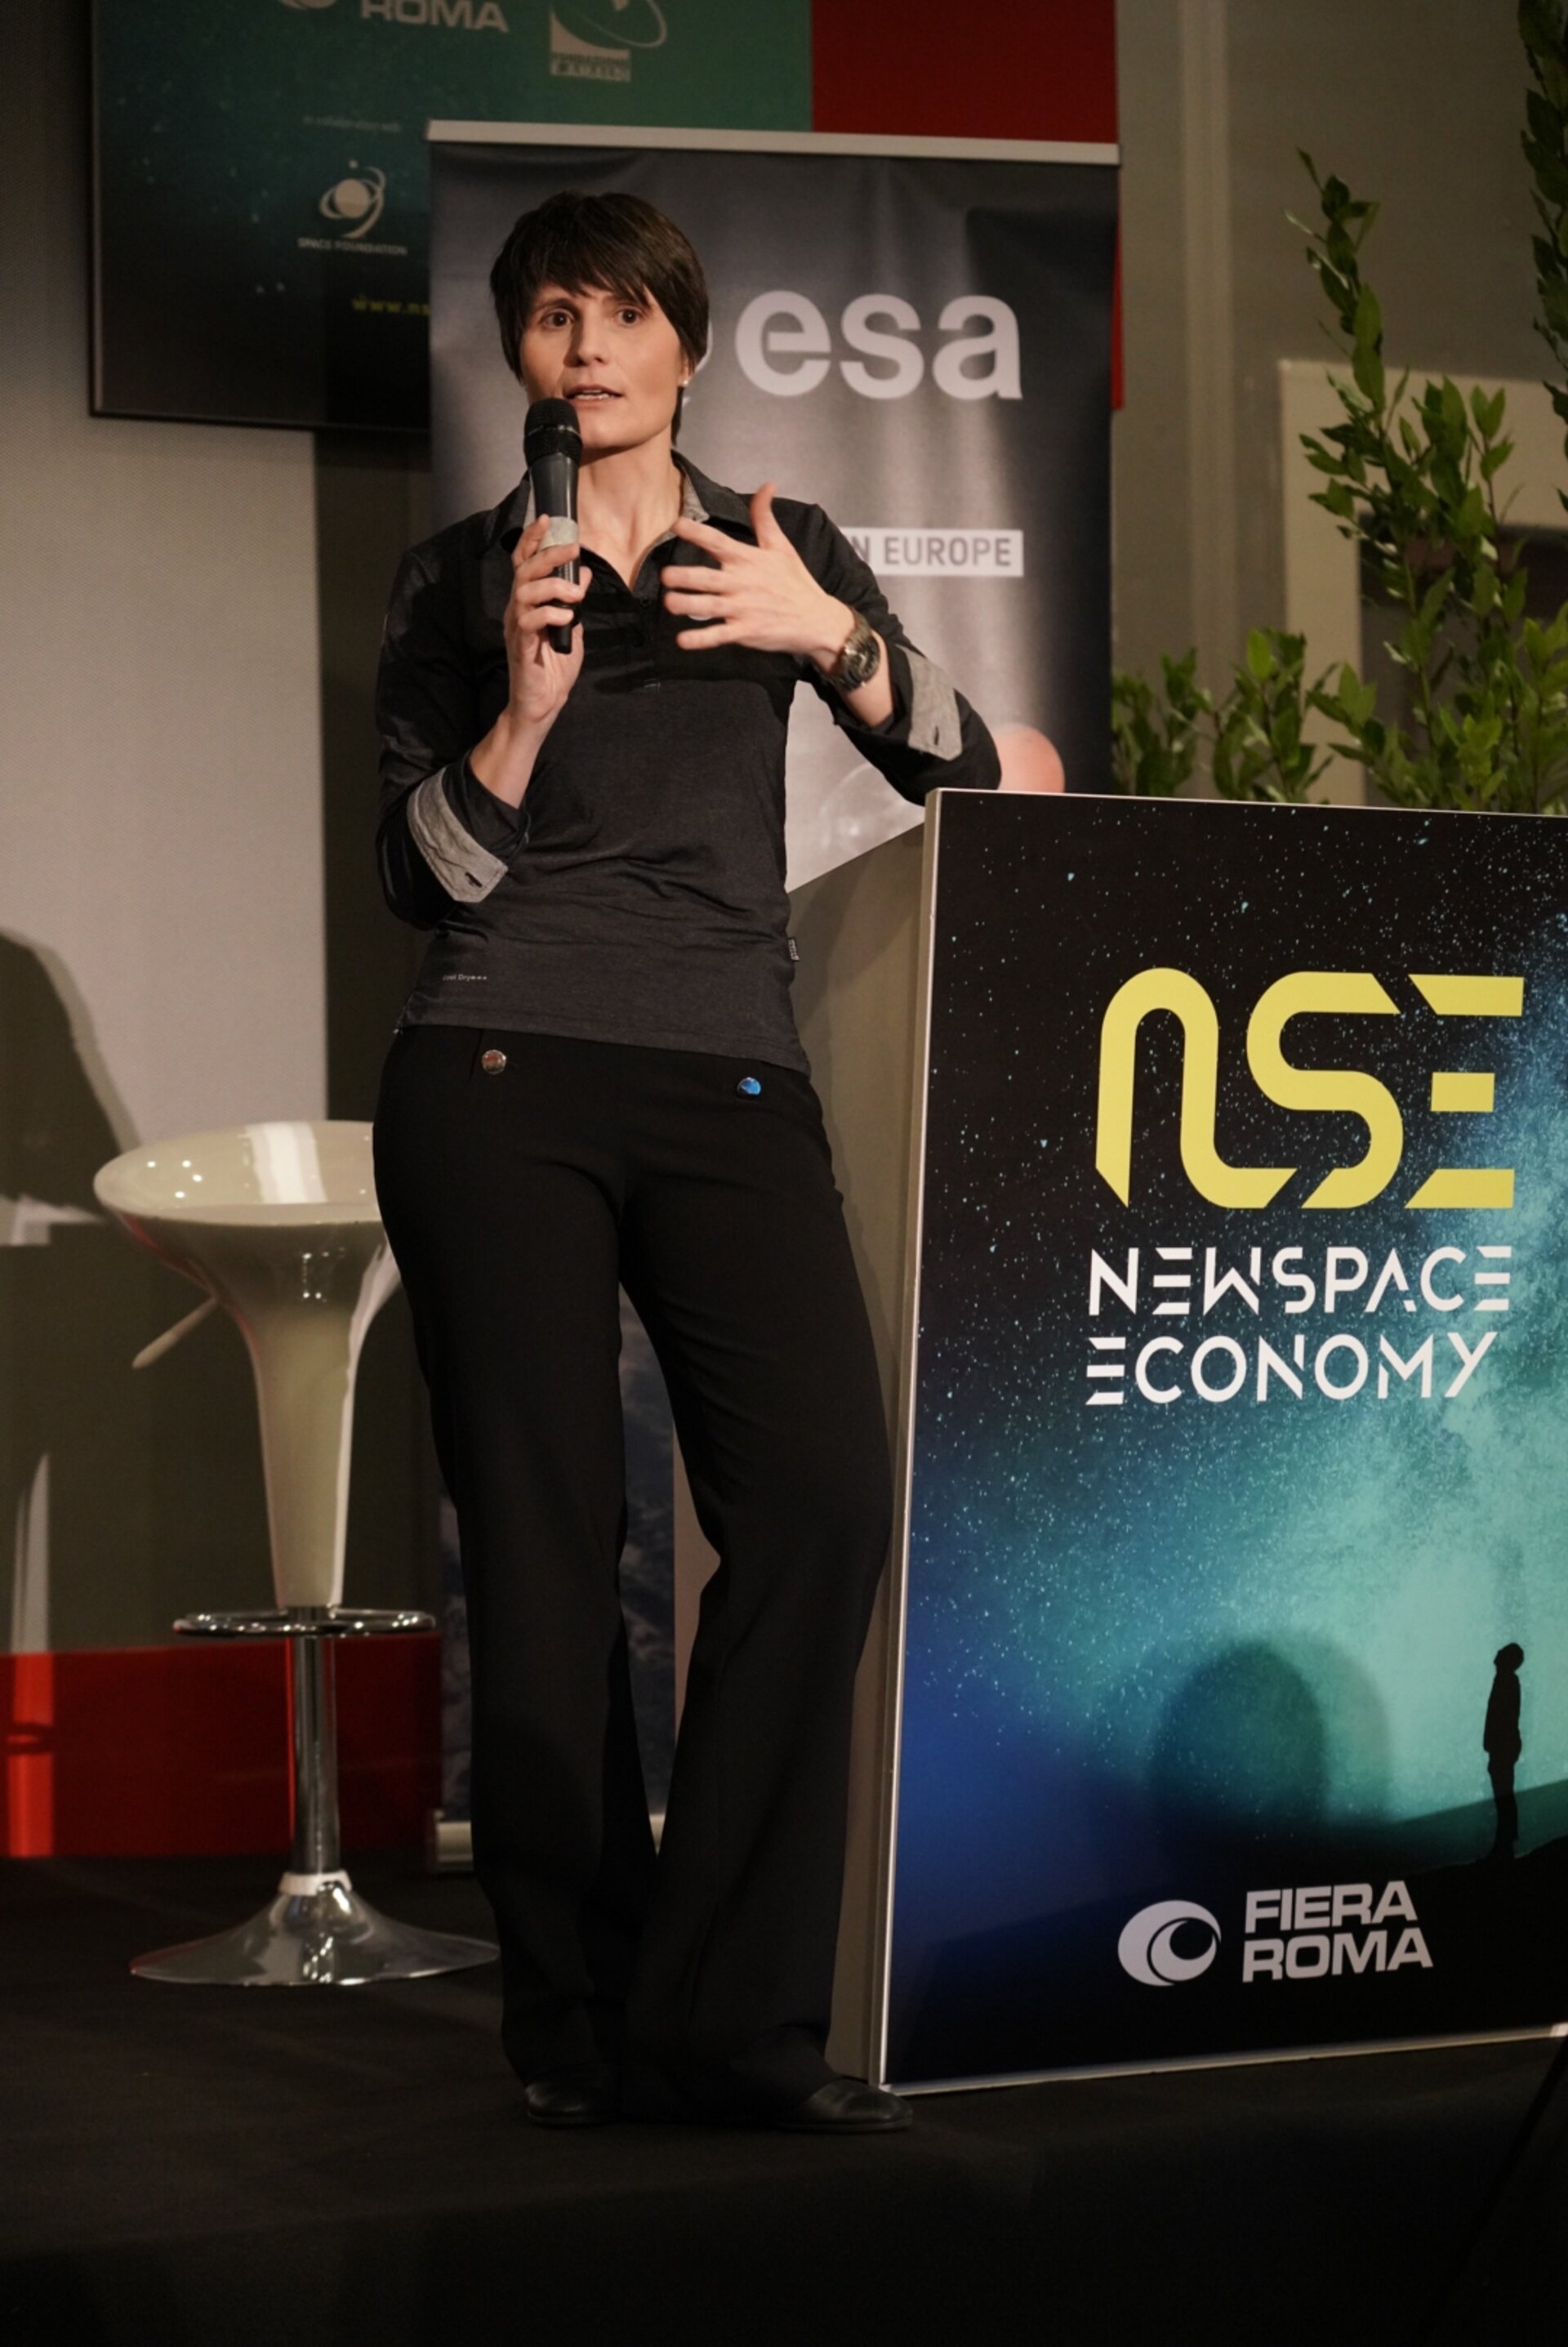 ESA Astronaut Samantha Cristoforetti presented the Benefits of Space on Economy and Society during the Global Space Economic Forum